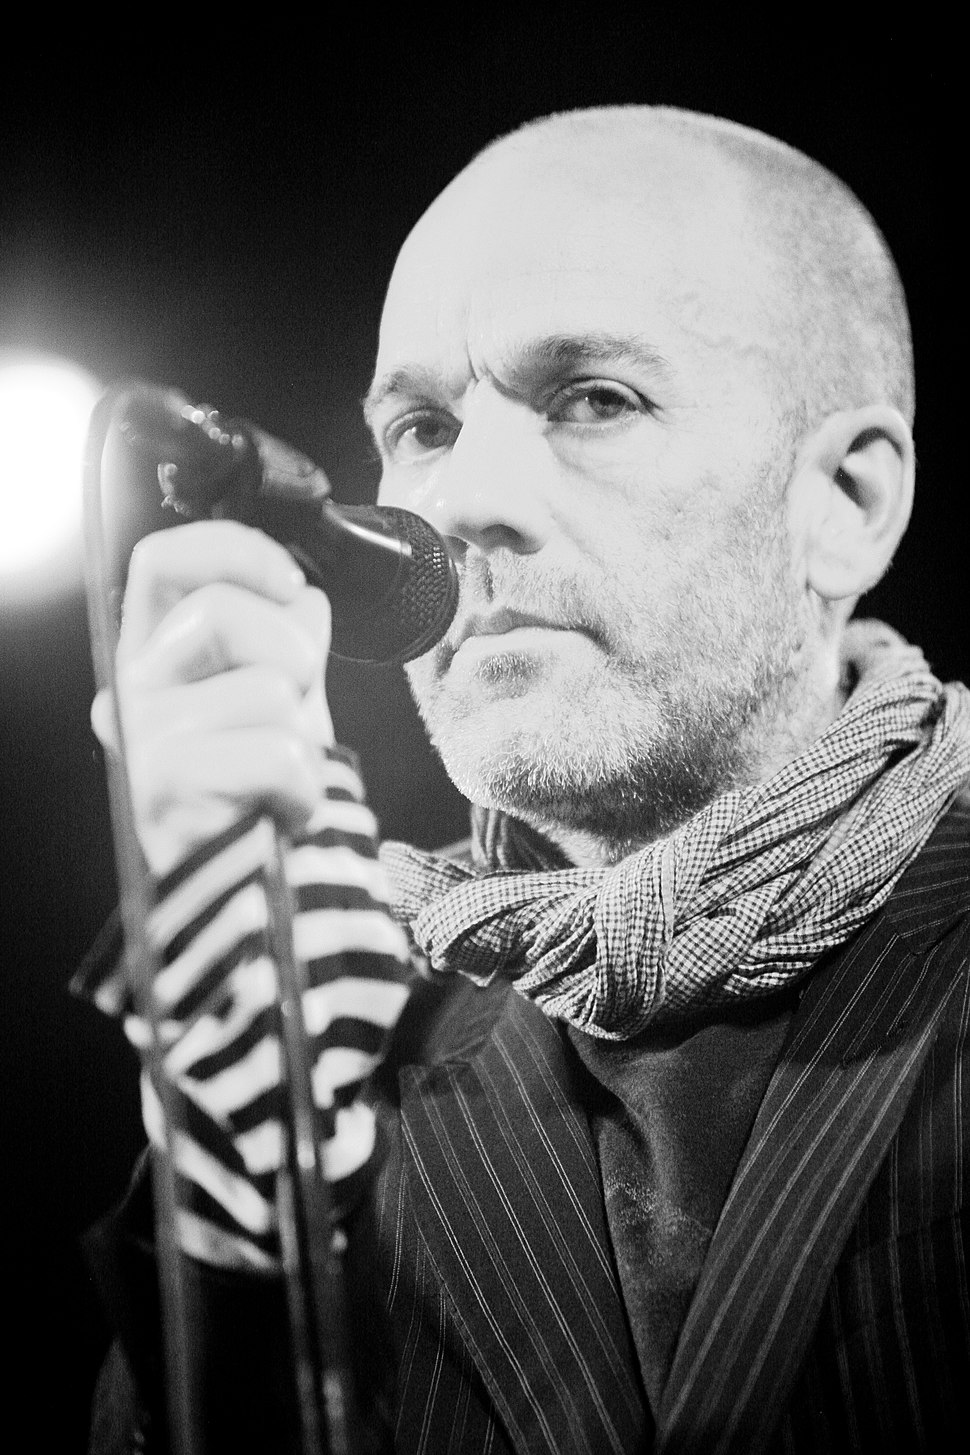 A close-up of Stipe holding a microphone